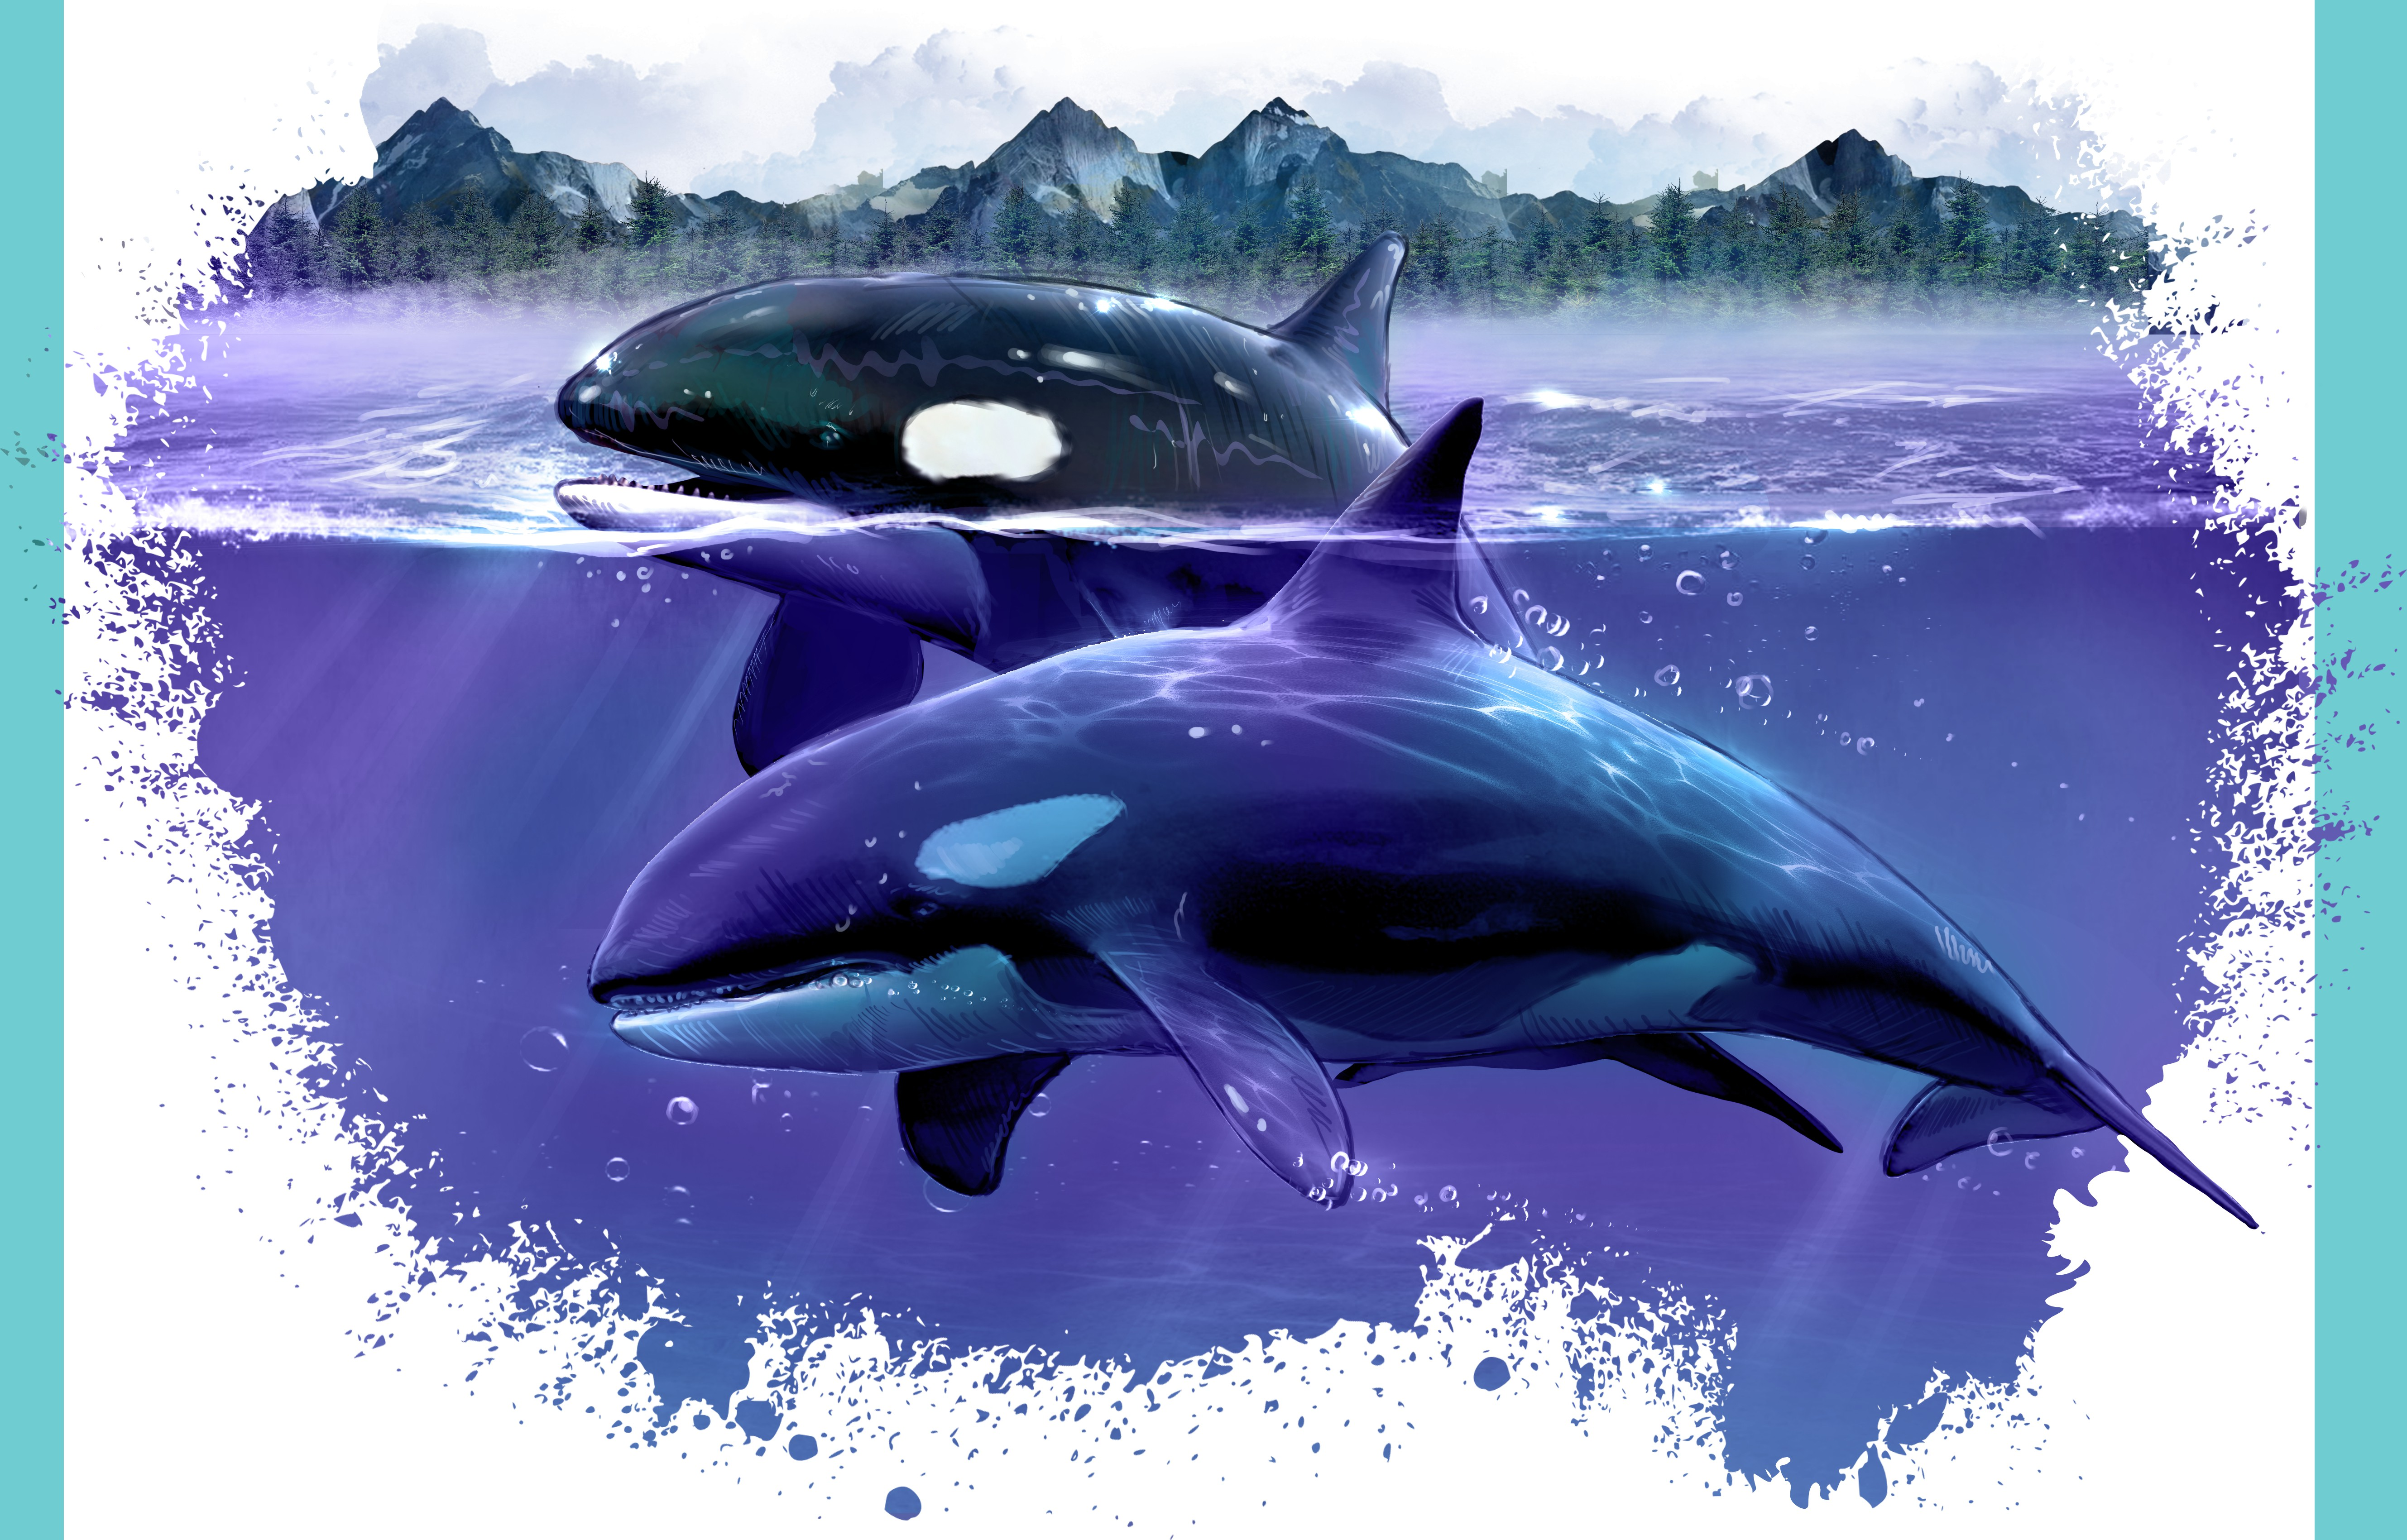 Orca - Also known as the Killer Whale